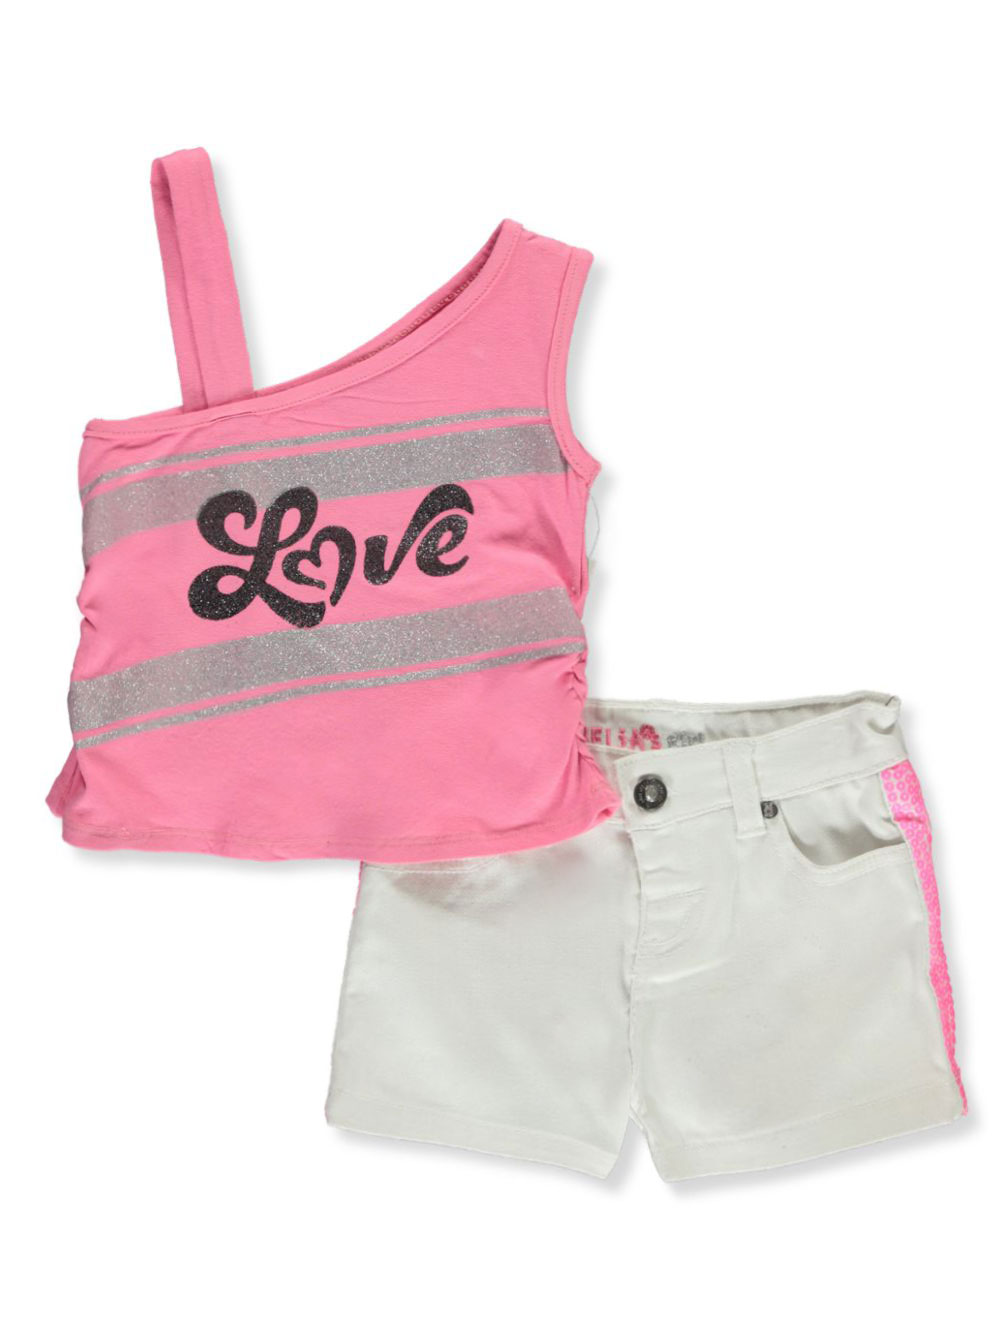 Girls White and Multicolor Short Sets